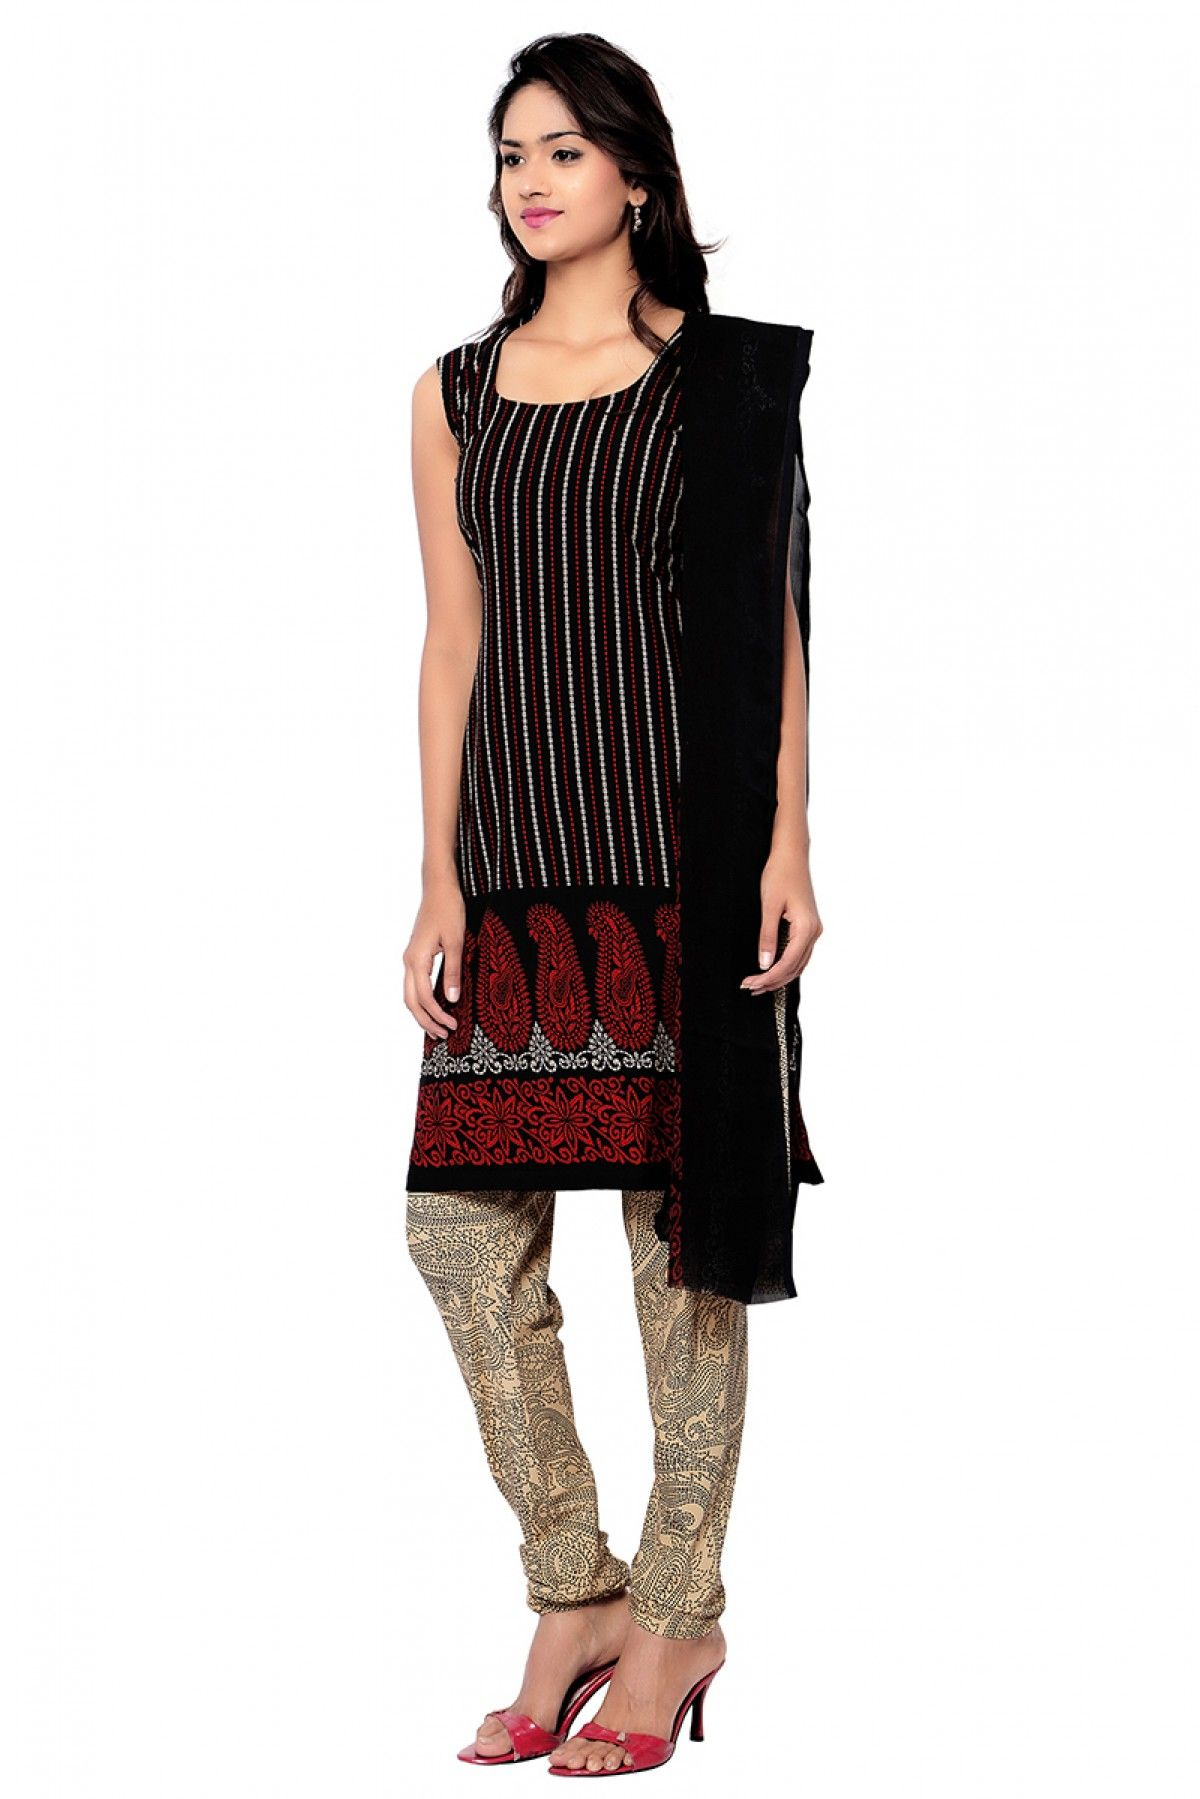 Crepe Casual Wear Churidar Suit in Black Colour | Churidar suits ...